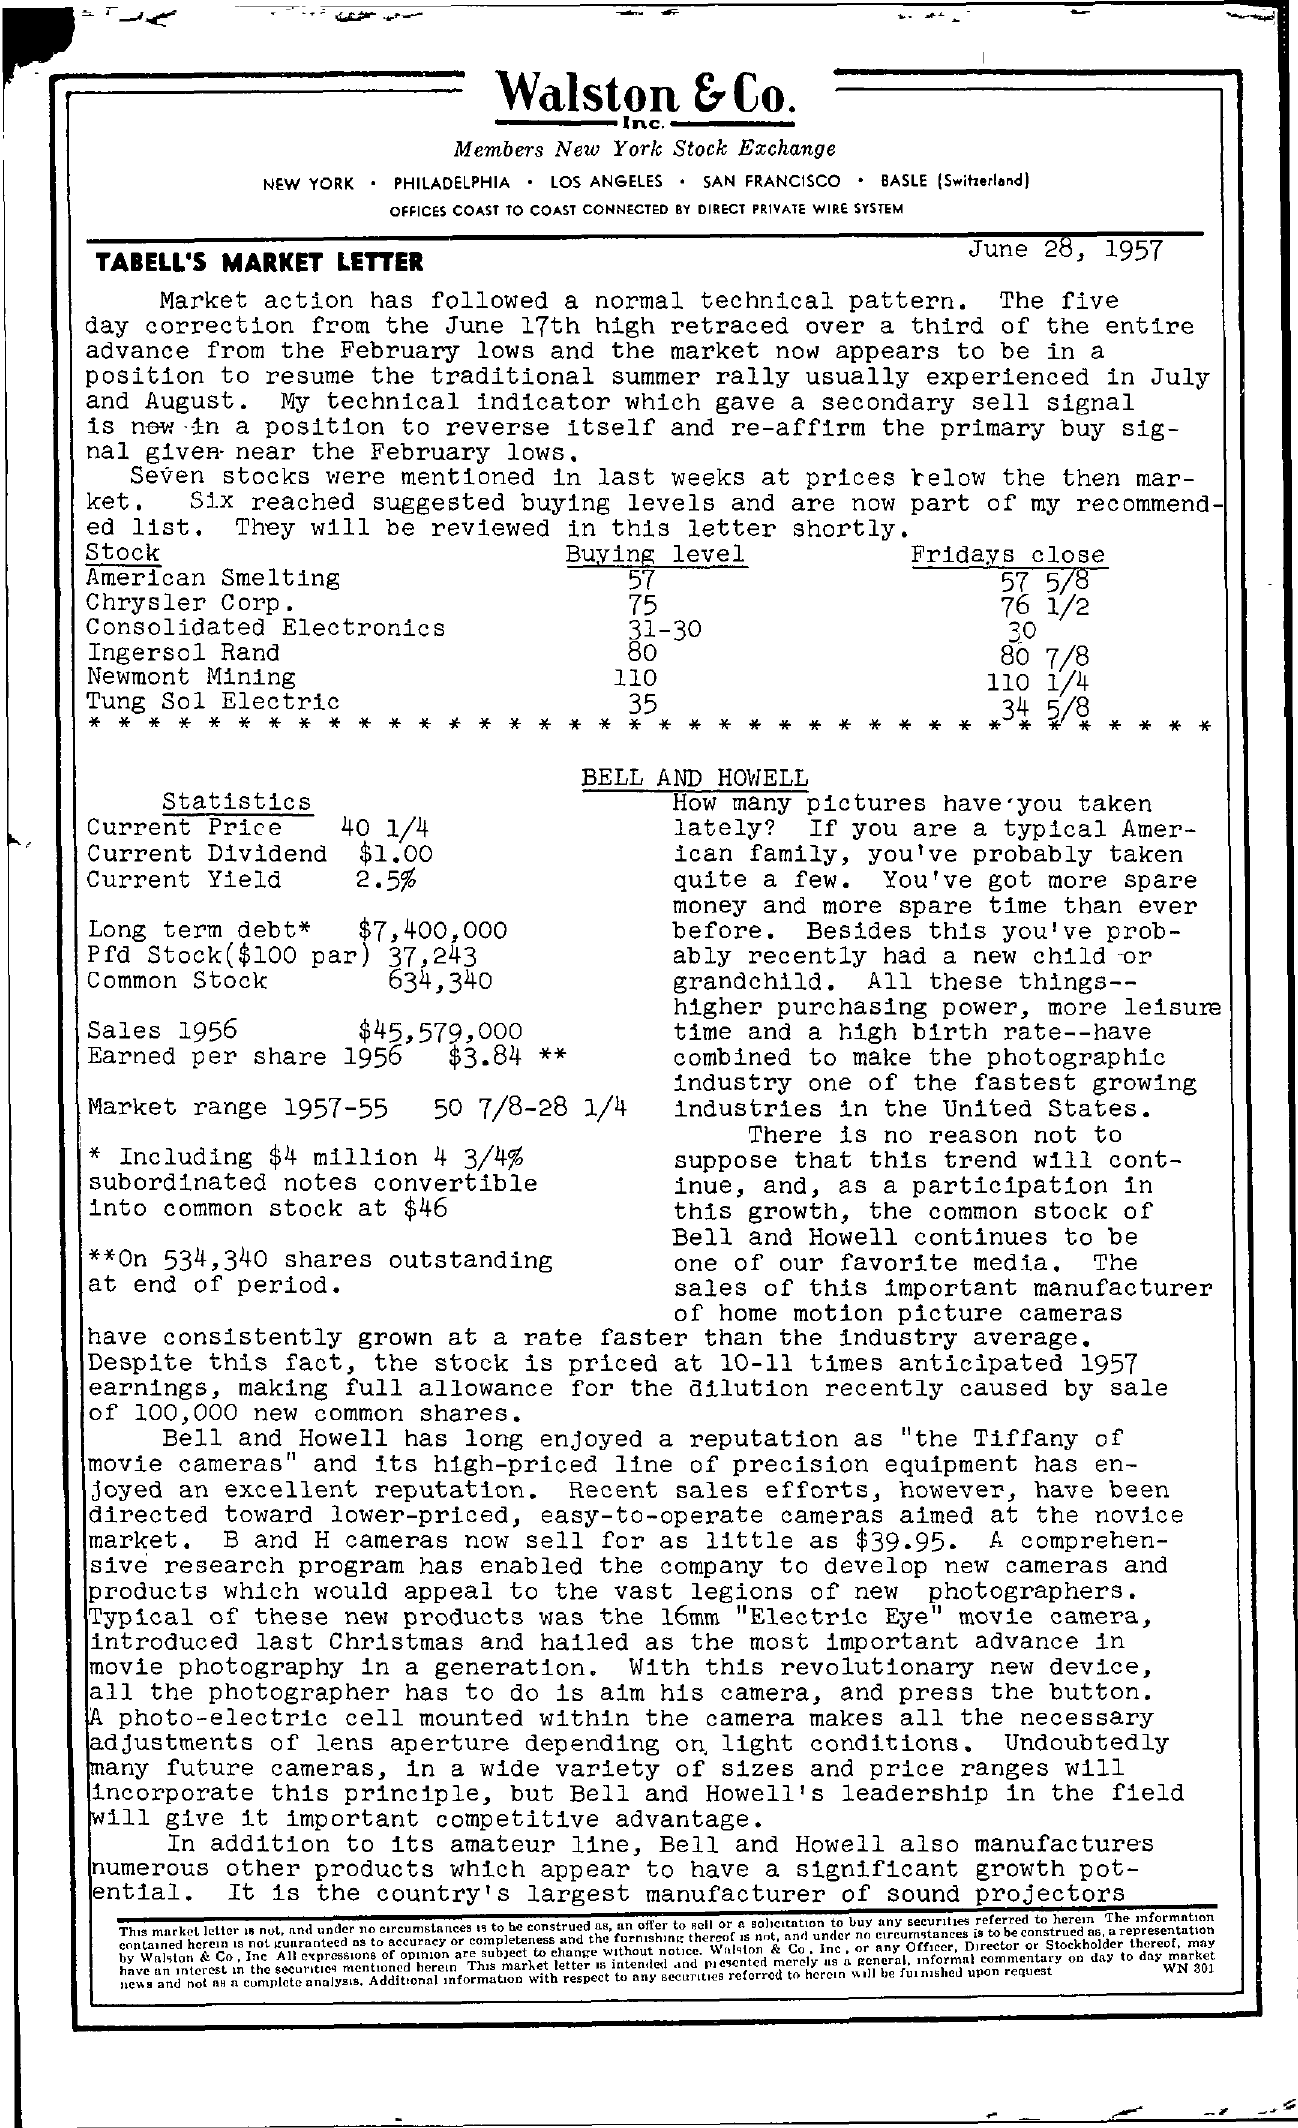 Tabell's Market Letter - June 28, 1957 page 1